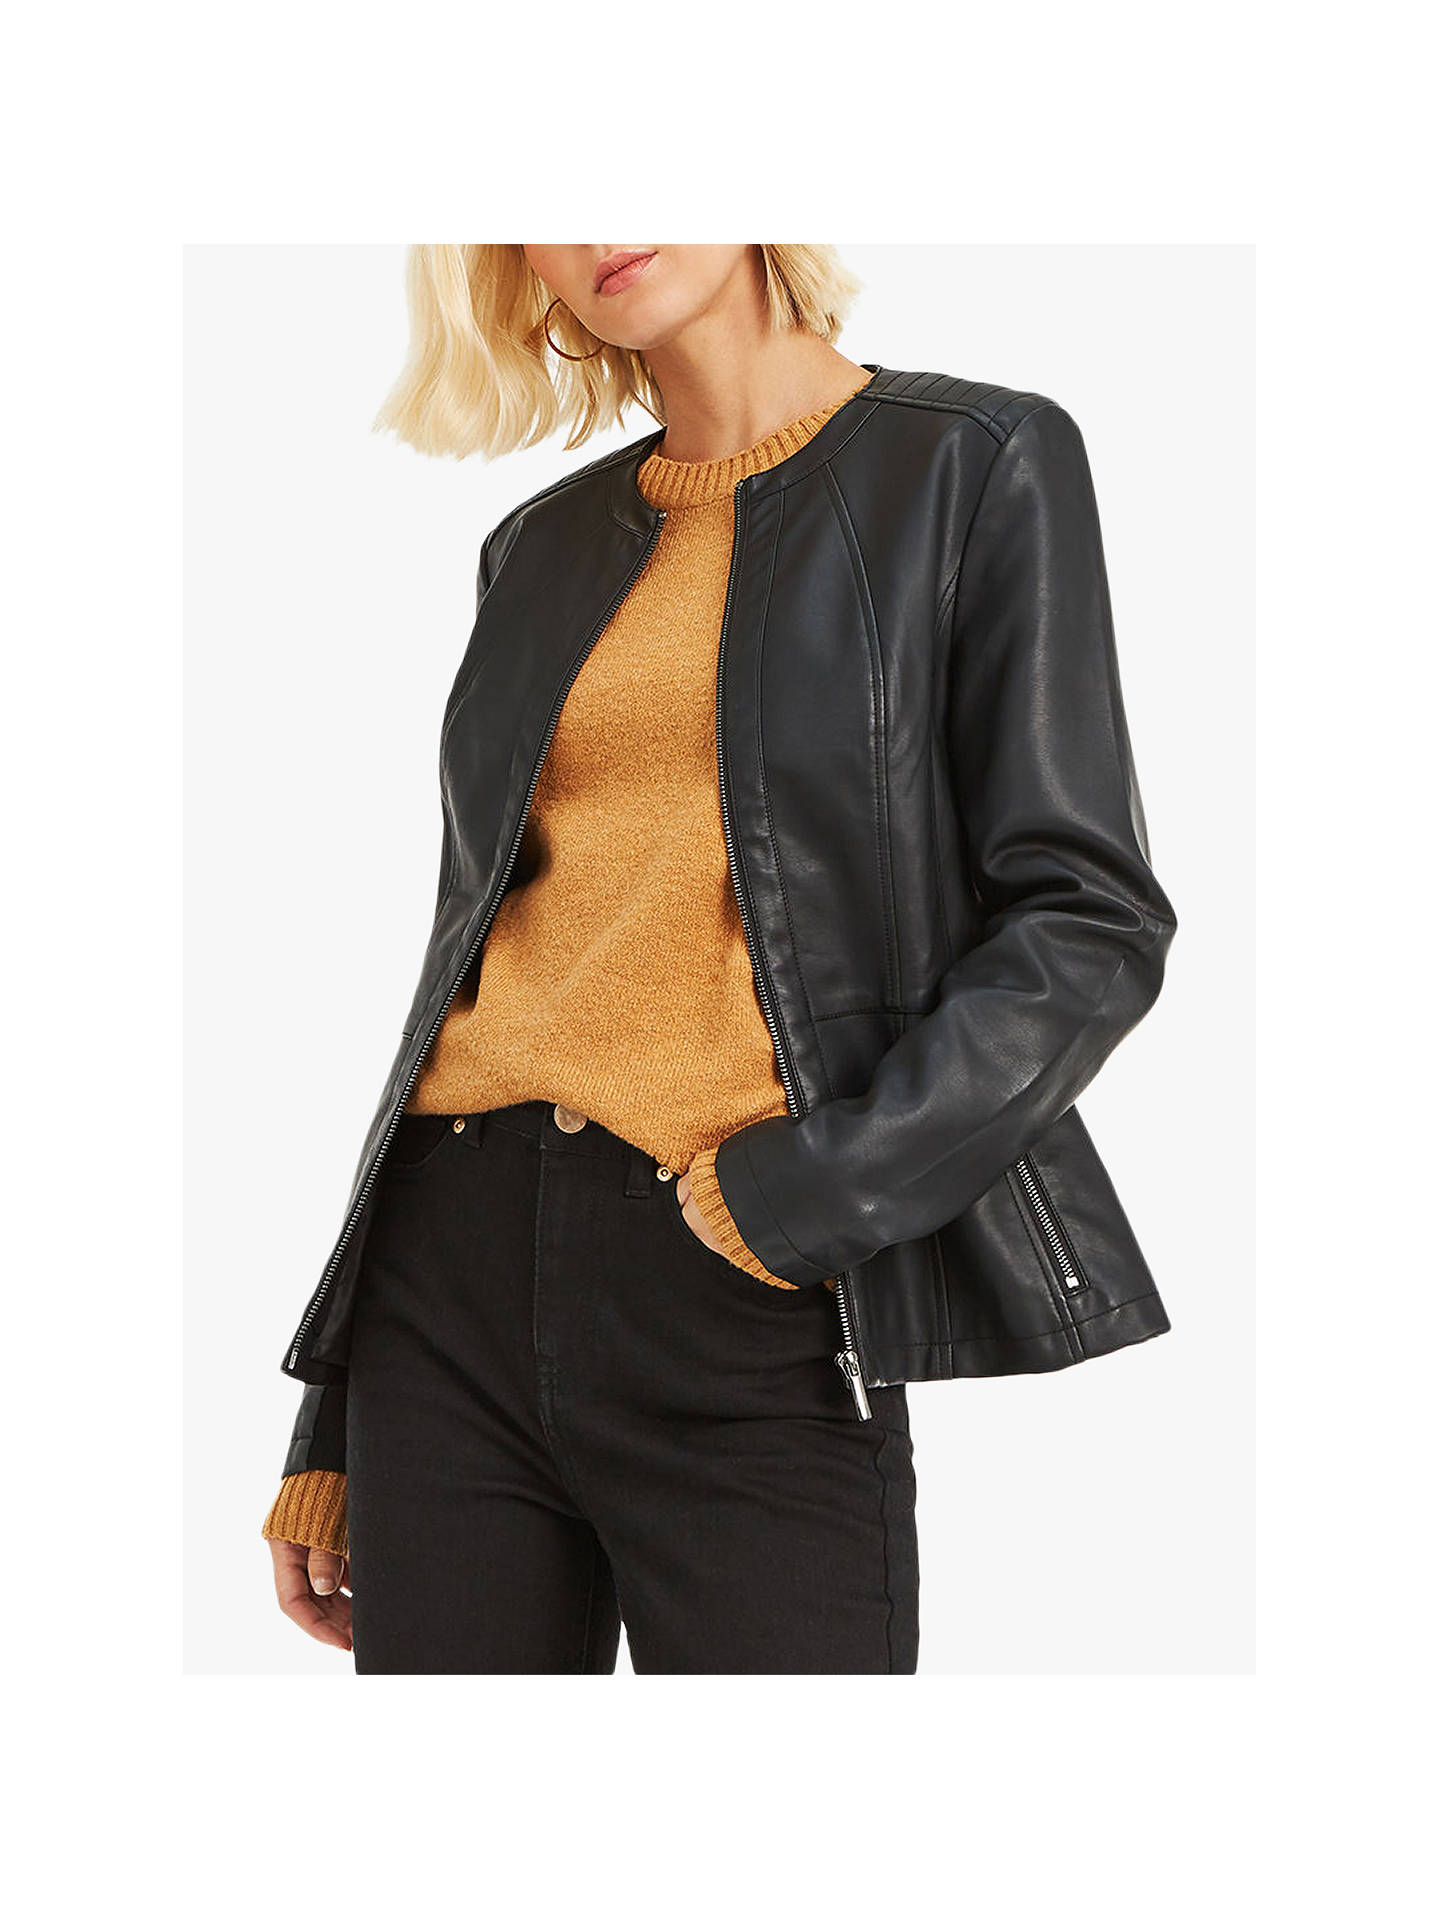 4be3cc89e2d3 Buy Oasis Faux Leather Collarless Jacket, Black, S Online at johnlewis.com  ...